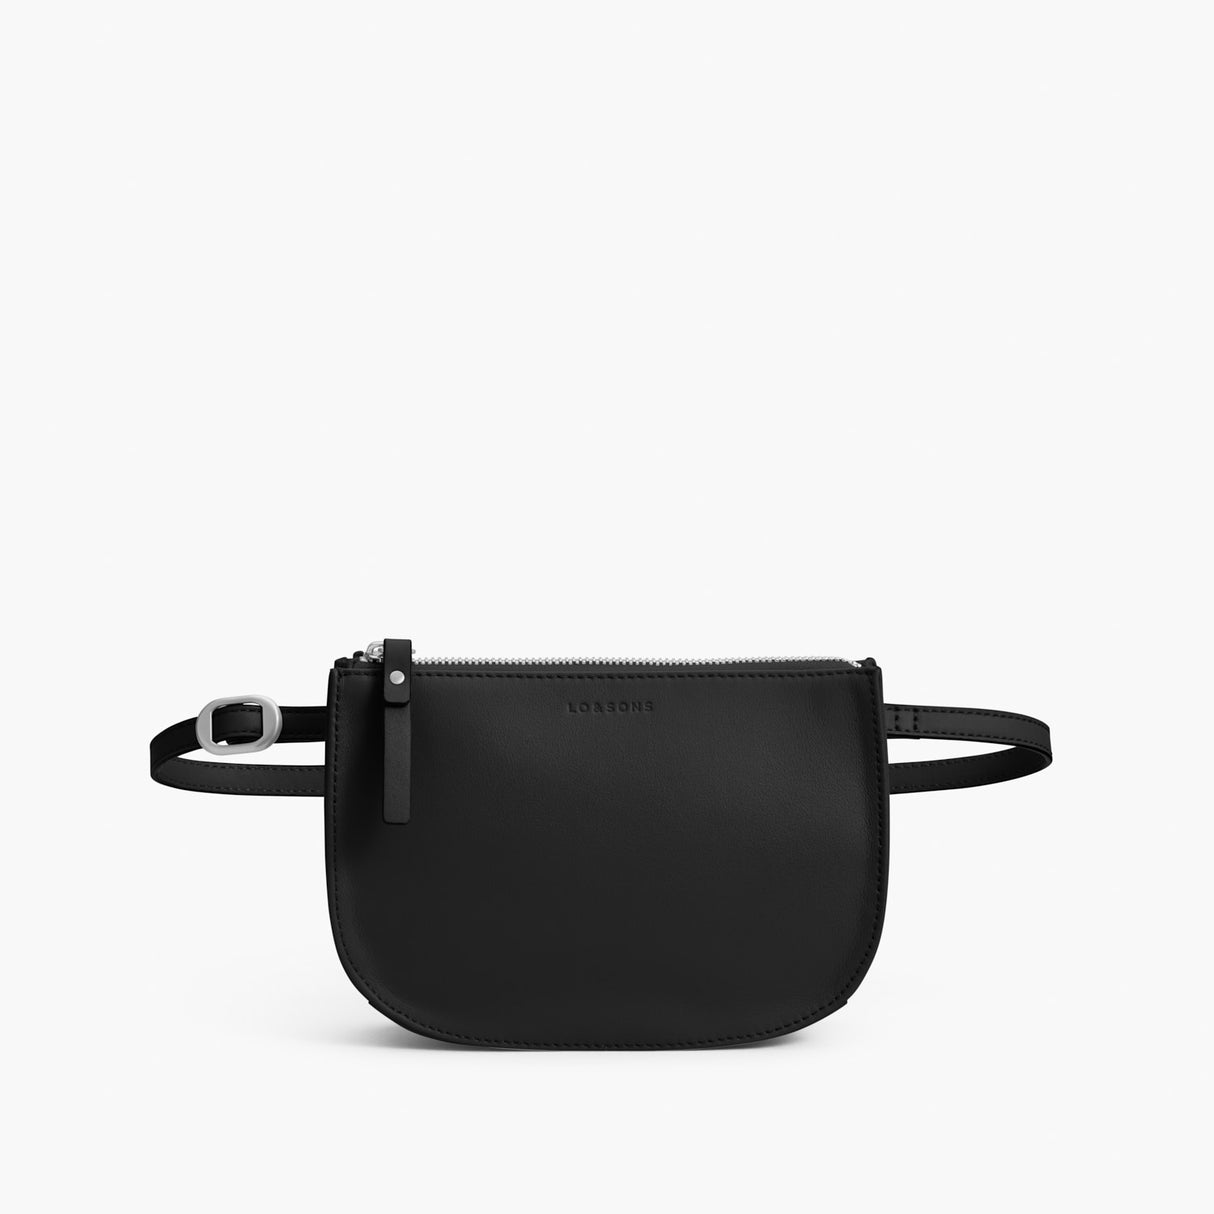 Front Belt - Waverley 2 - Nappa Leather - Black / Silver / Grey - Crossbody Bag - Lo & Sons